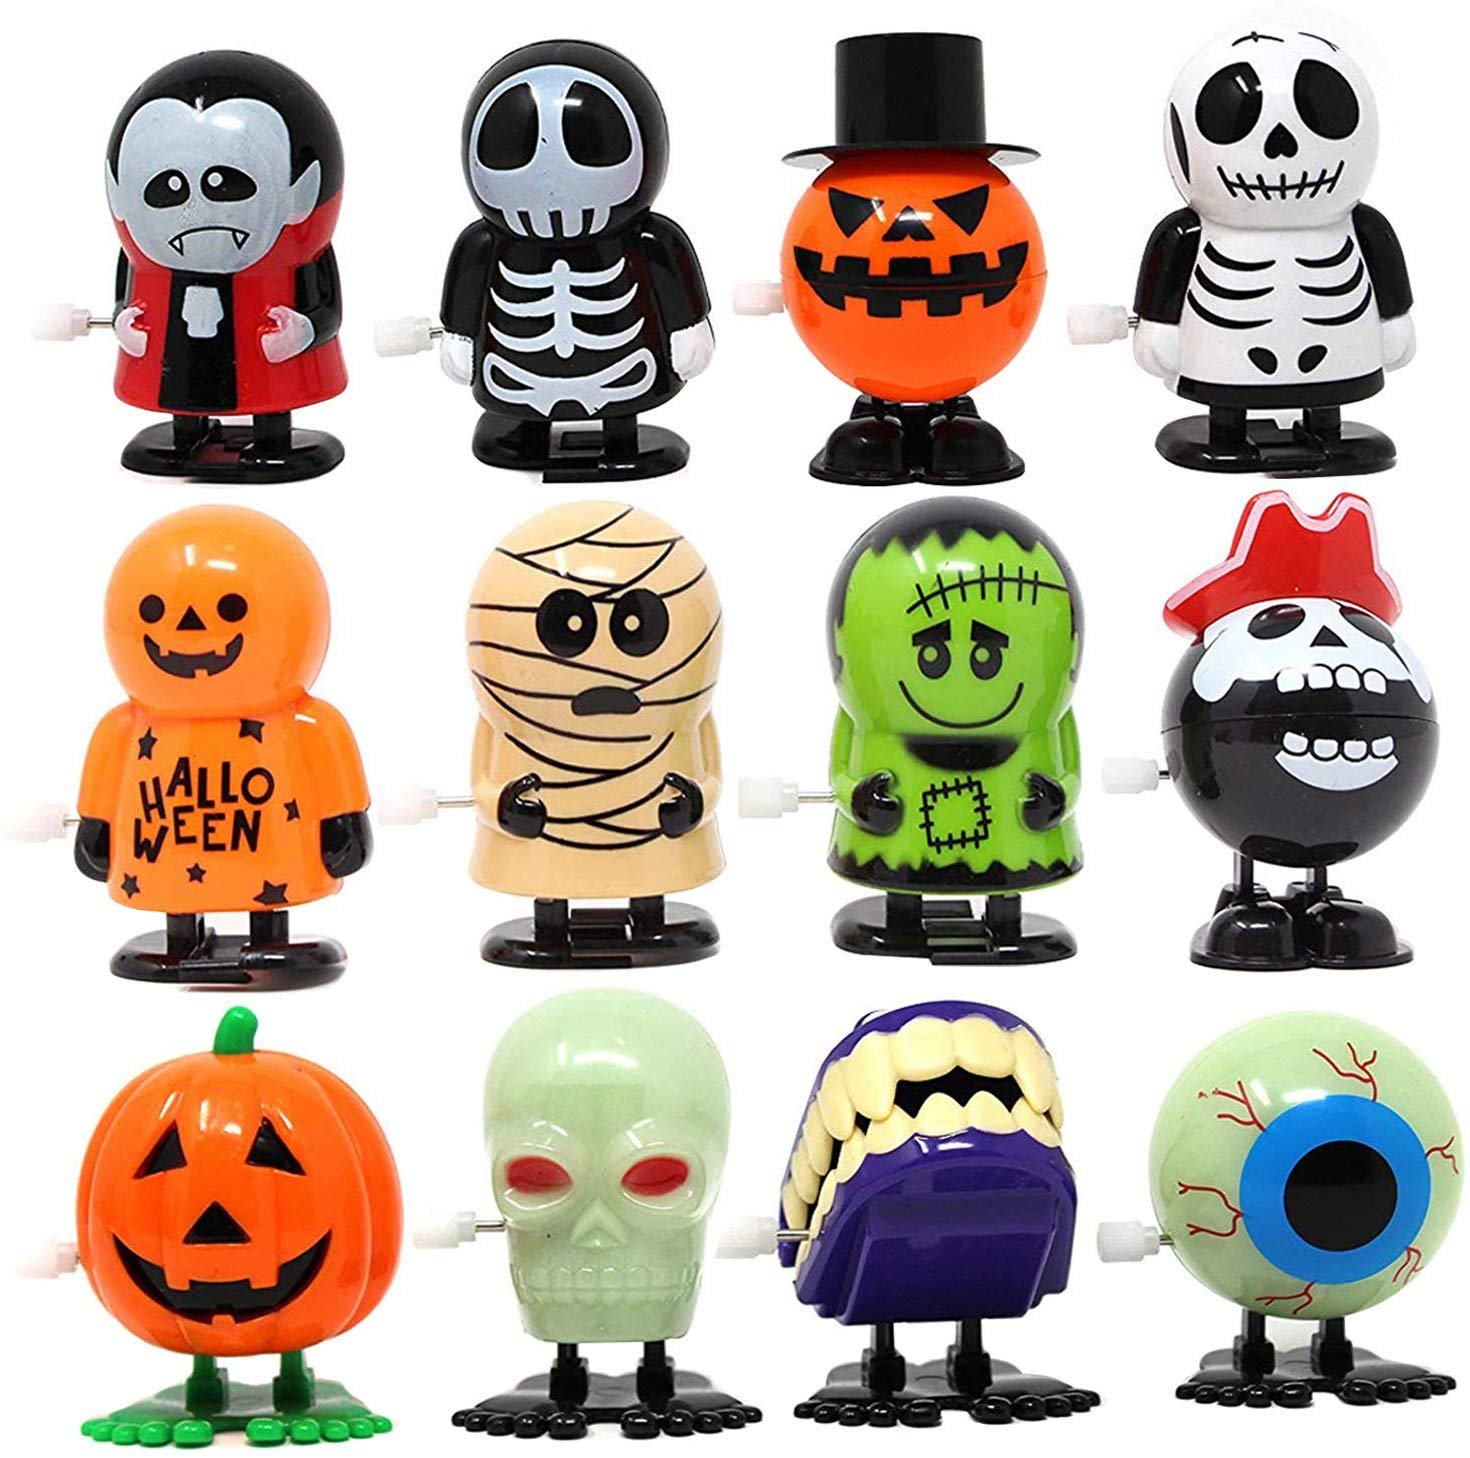 JOYIN 12 Pack Halloween Wind Up Toy Assortments for Halloween Party Favor  Goody Bag Filler (12 Pieces Pack).